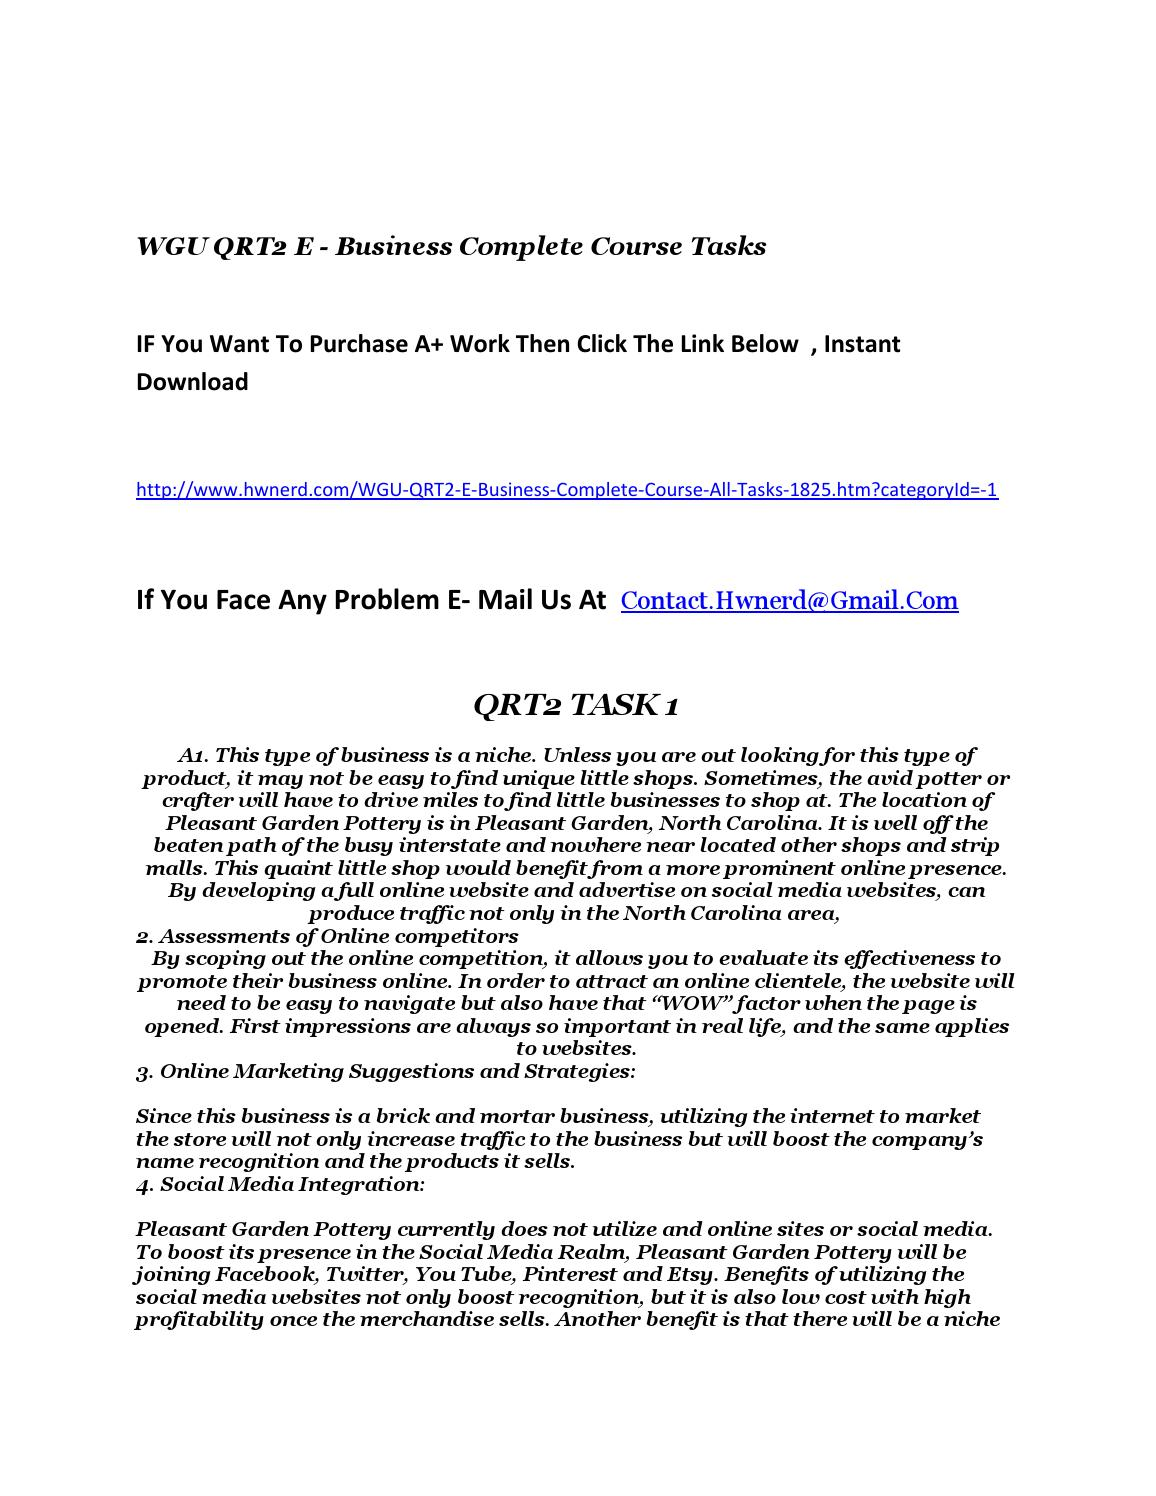 Wgu qrt2 e business complete course by chifonm - issuu